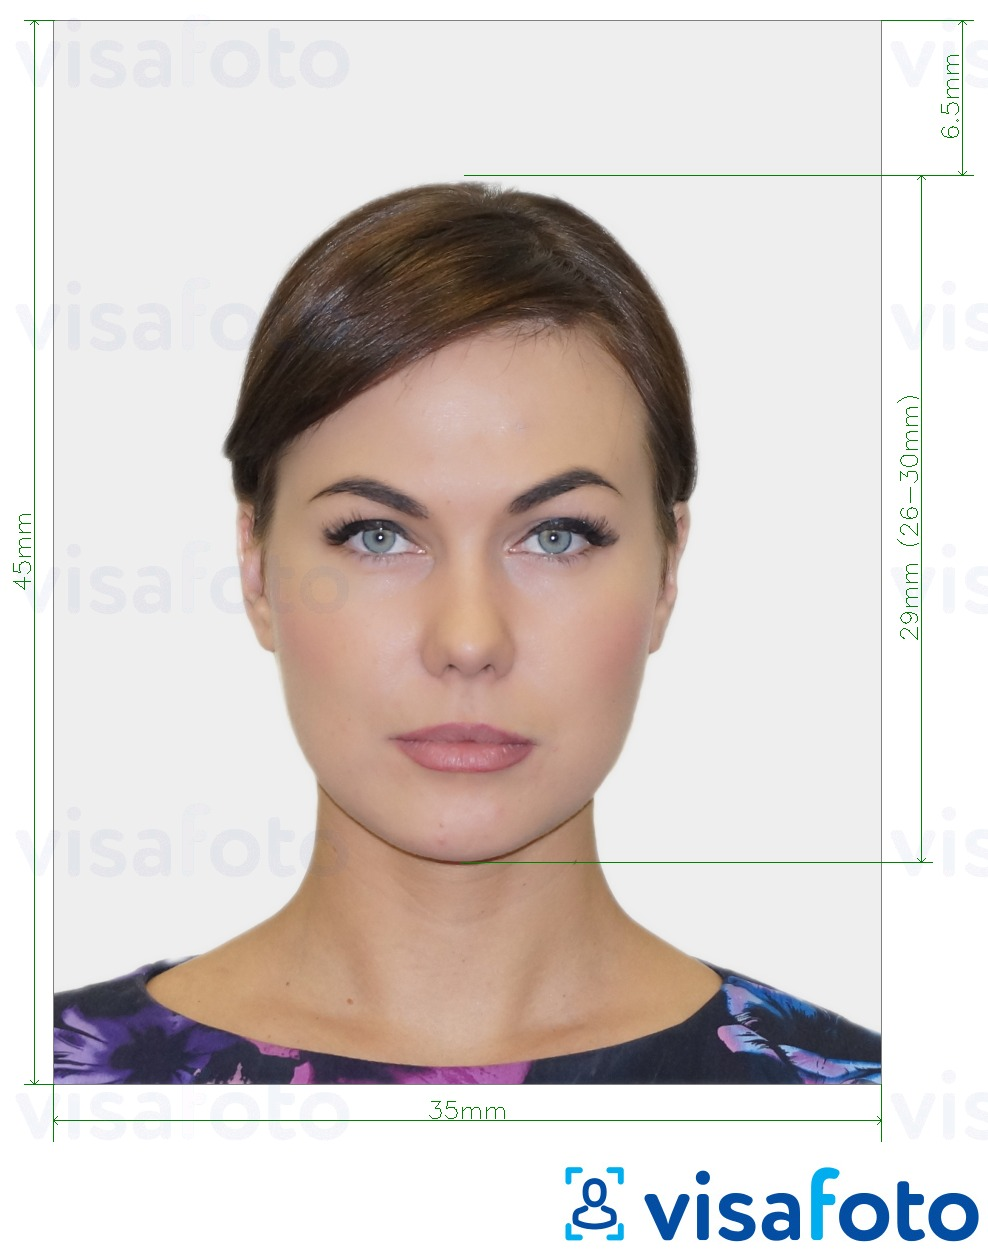 Example of photo for Netherlands Passport with exact size specification